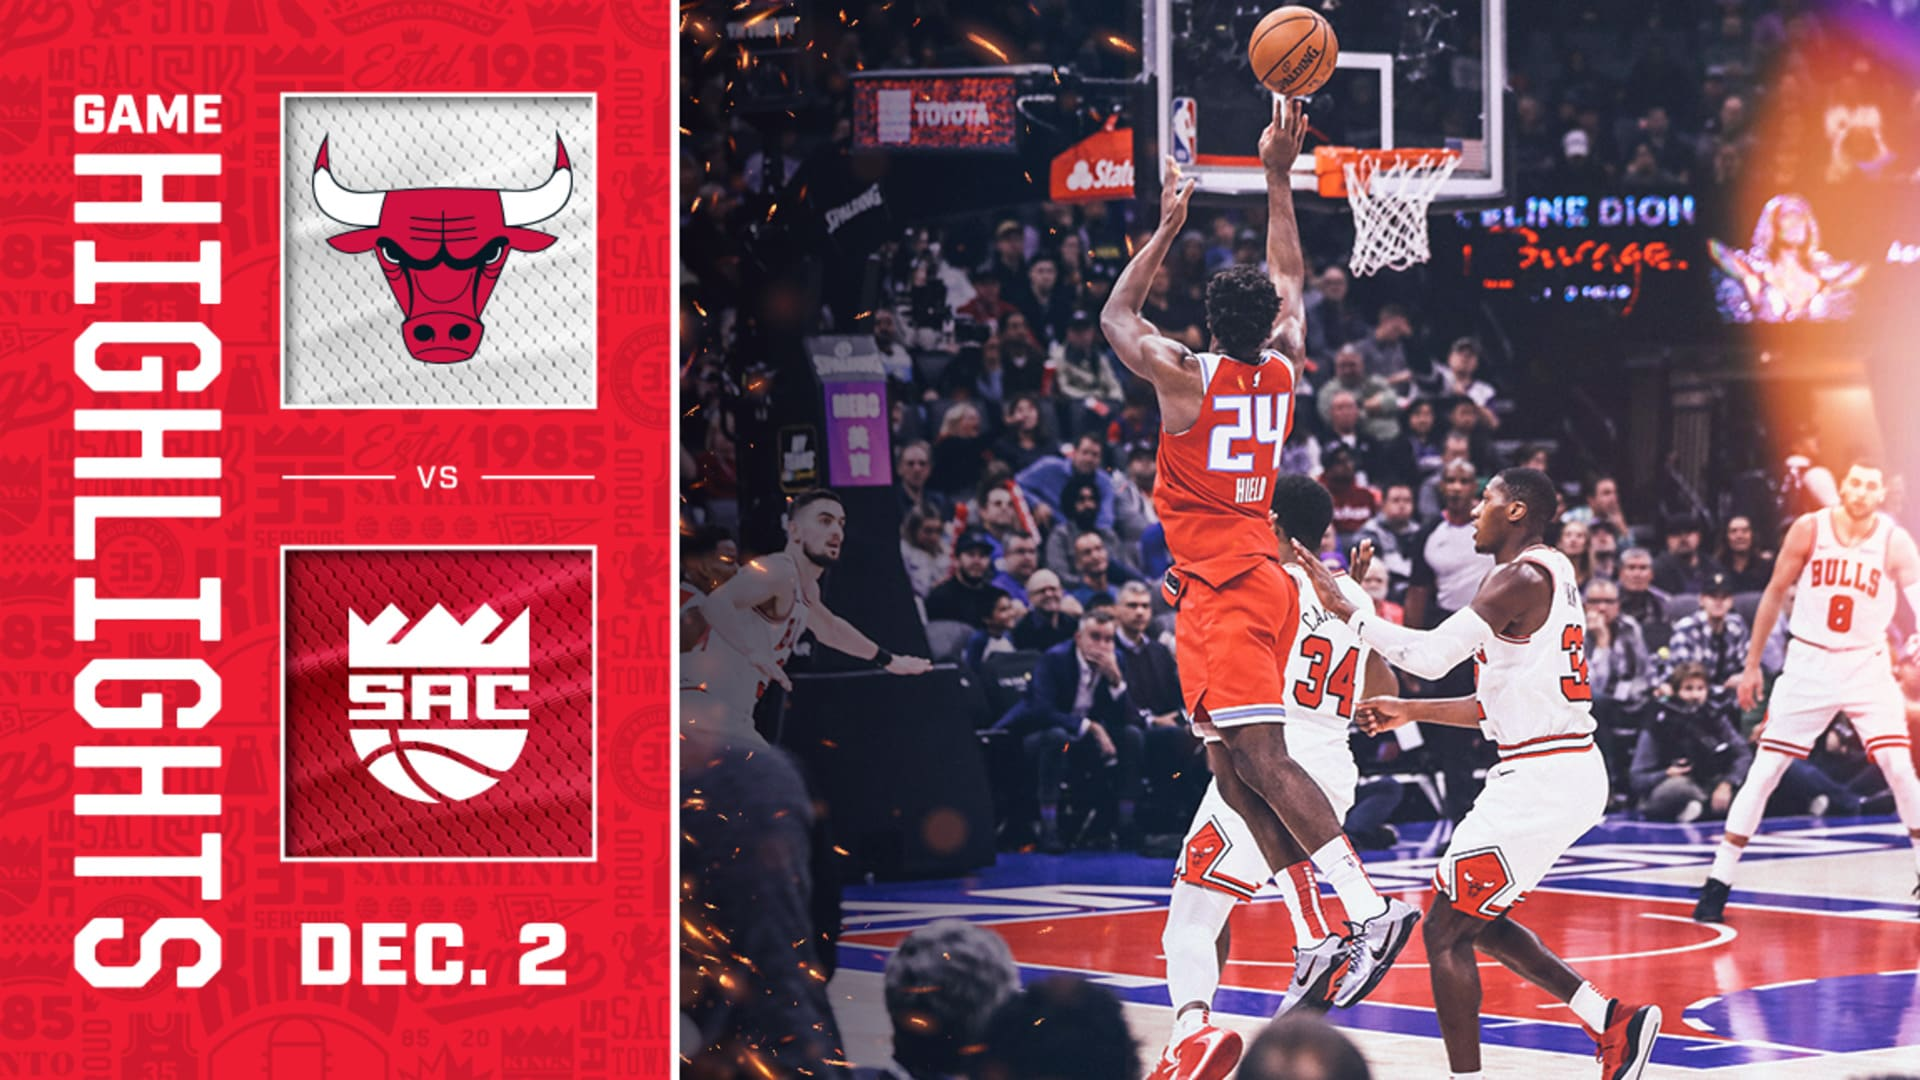 Down to the Wire Battle | Kings vs Bulls